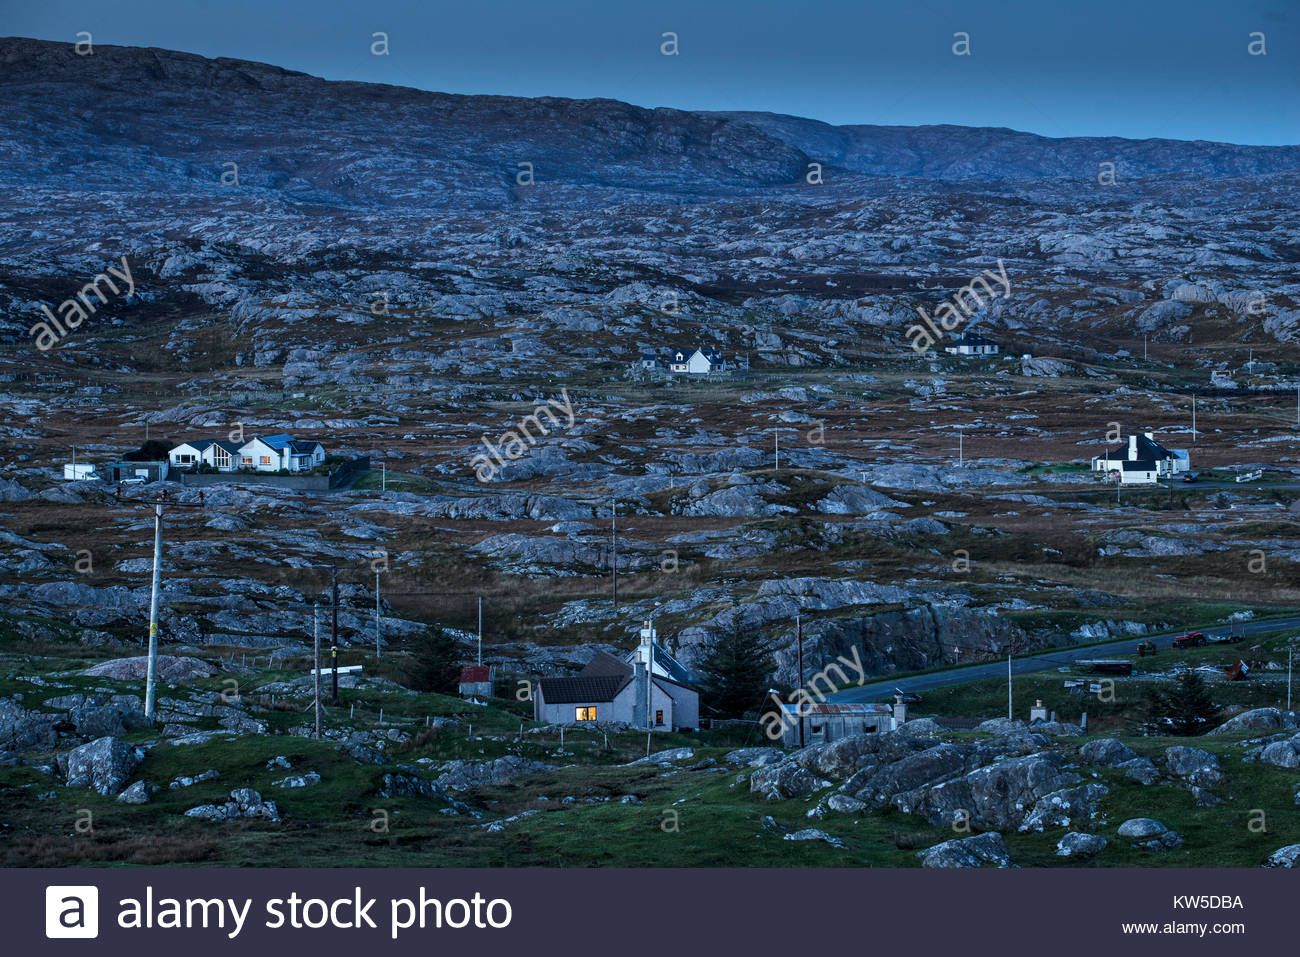 Tenant farms on the rugged east coast of the Isle of Harris, Scotland. - Stock Image